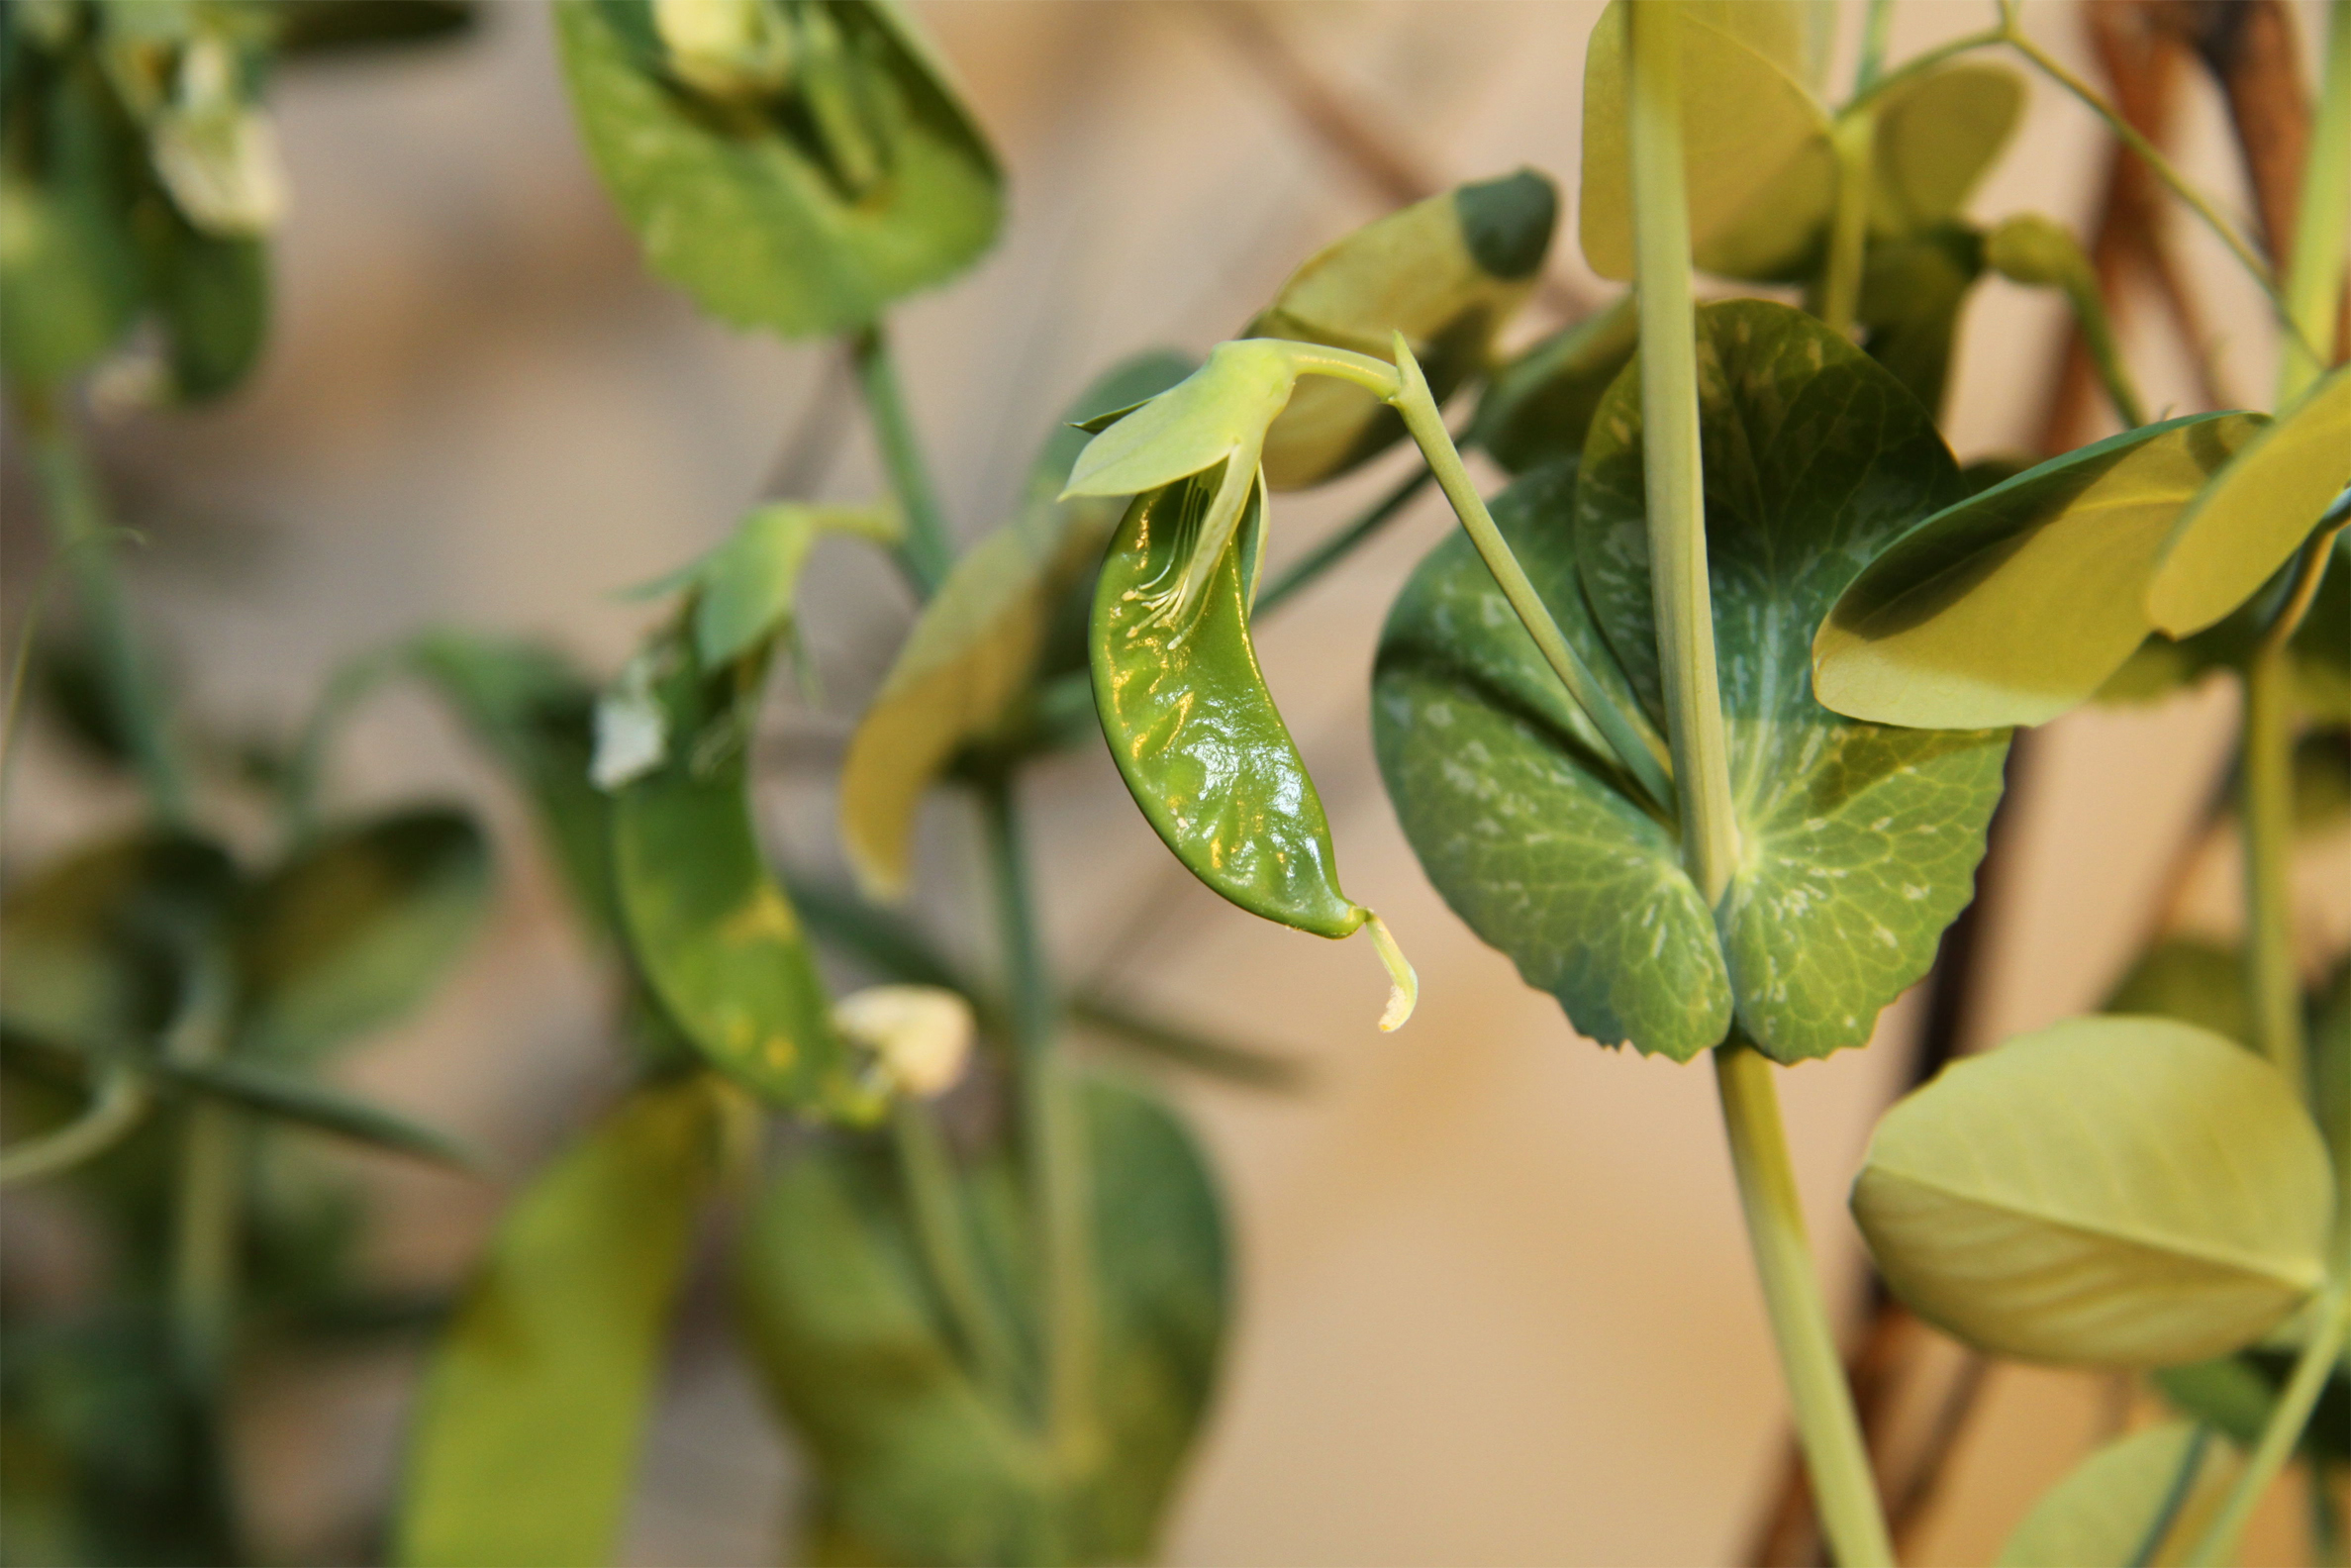 Young-pods-of-Green-peas